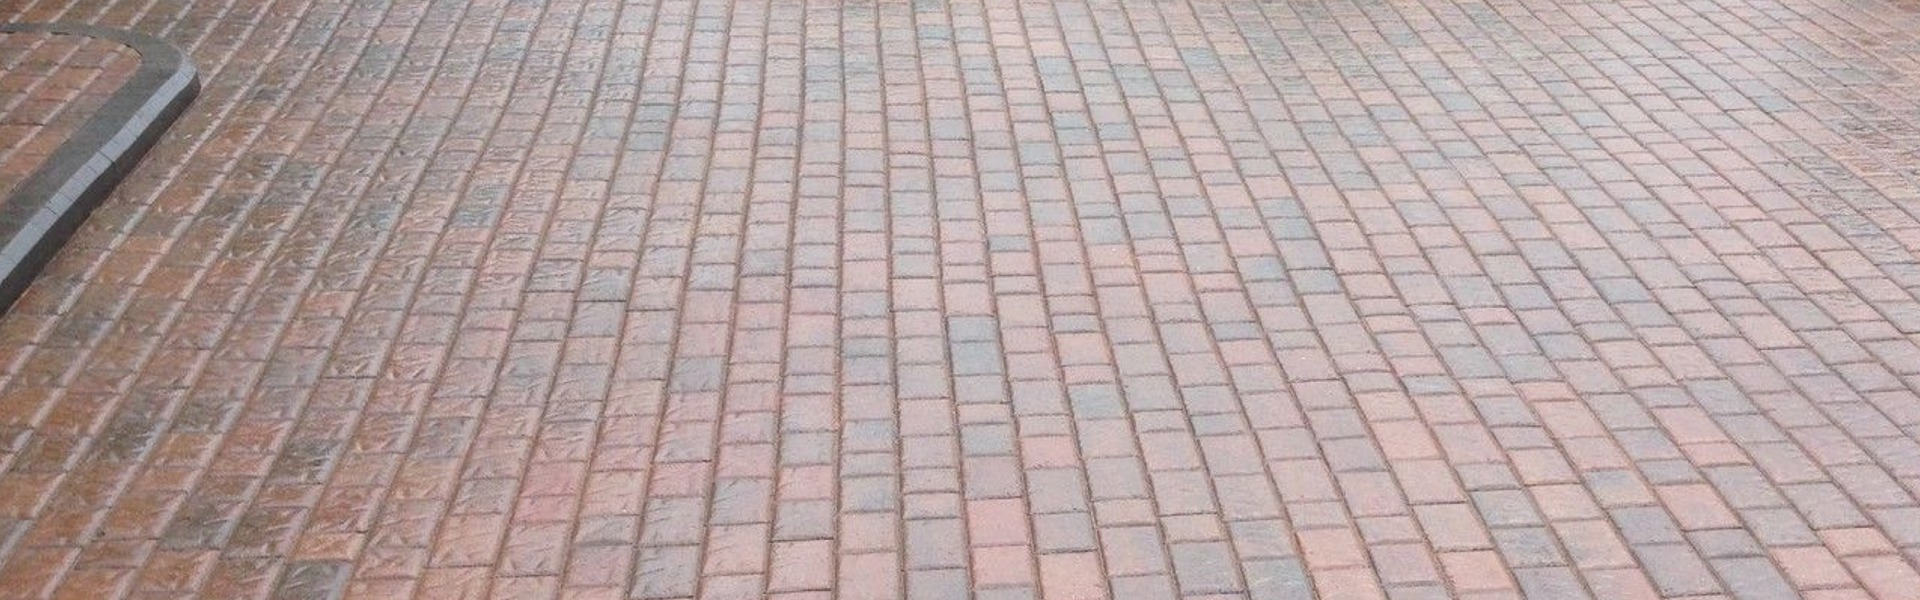 Drive way Block Paving